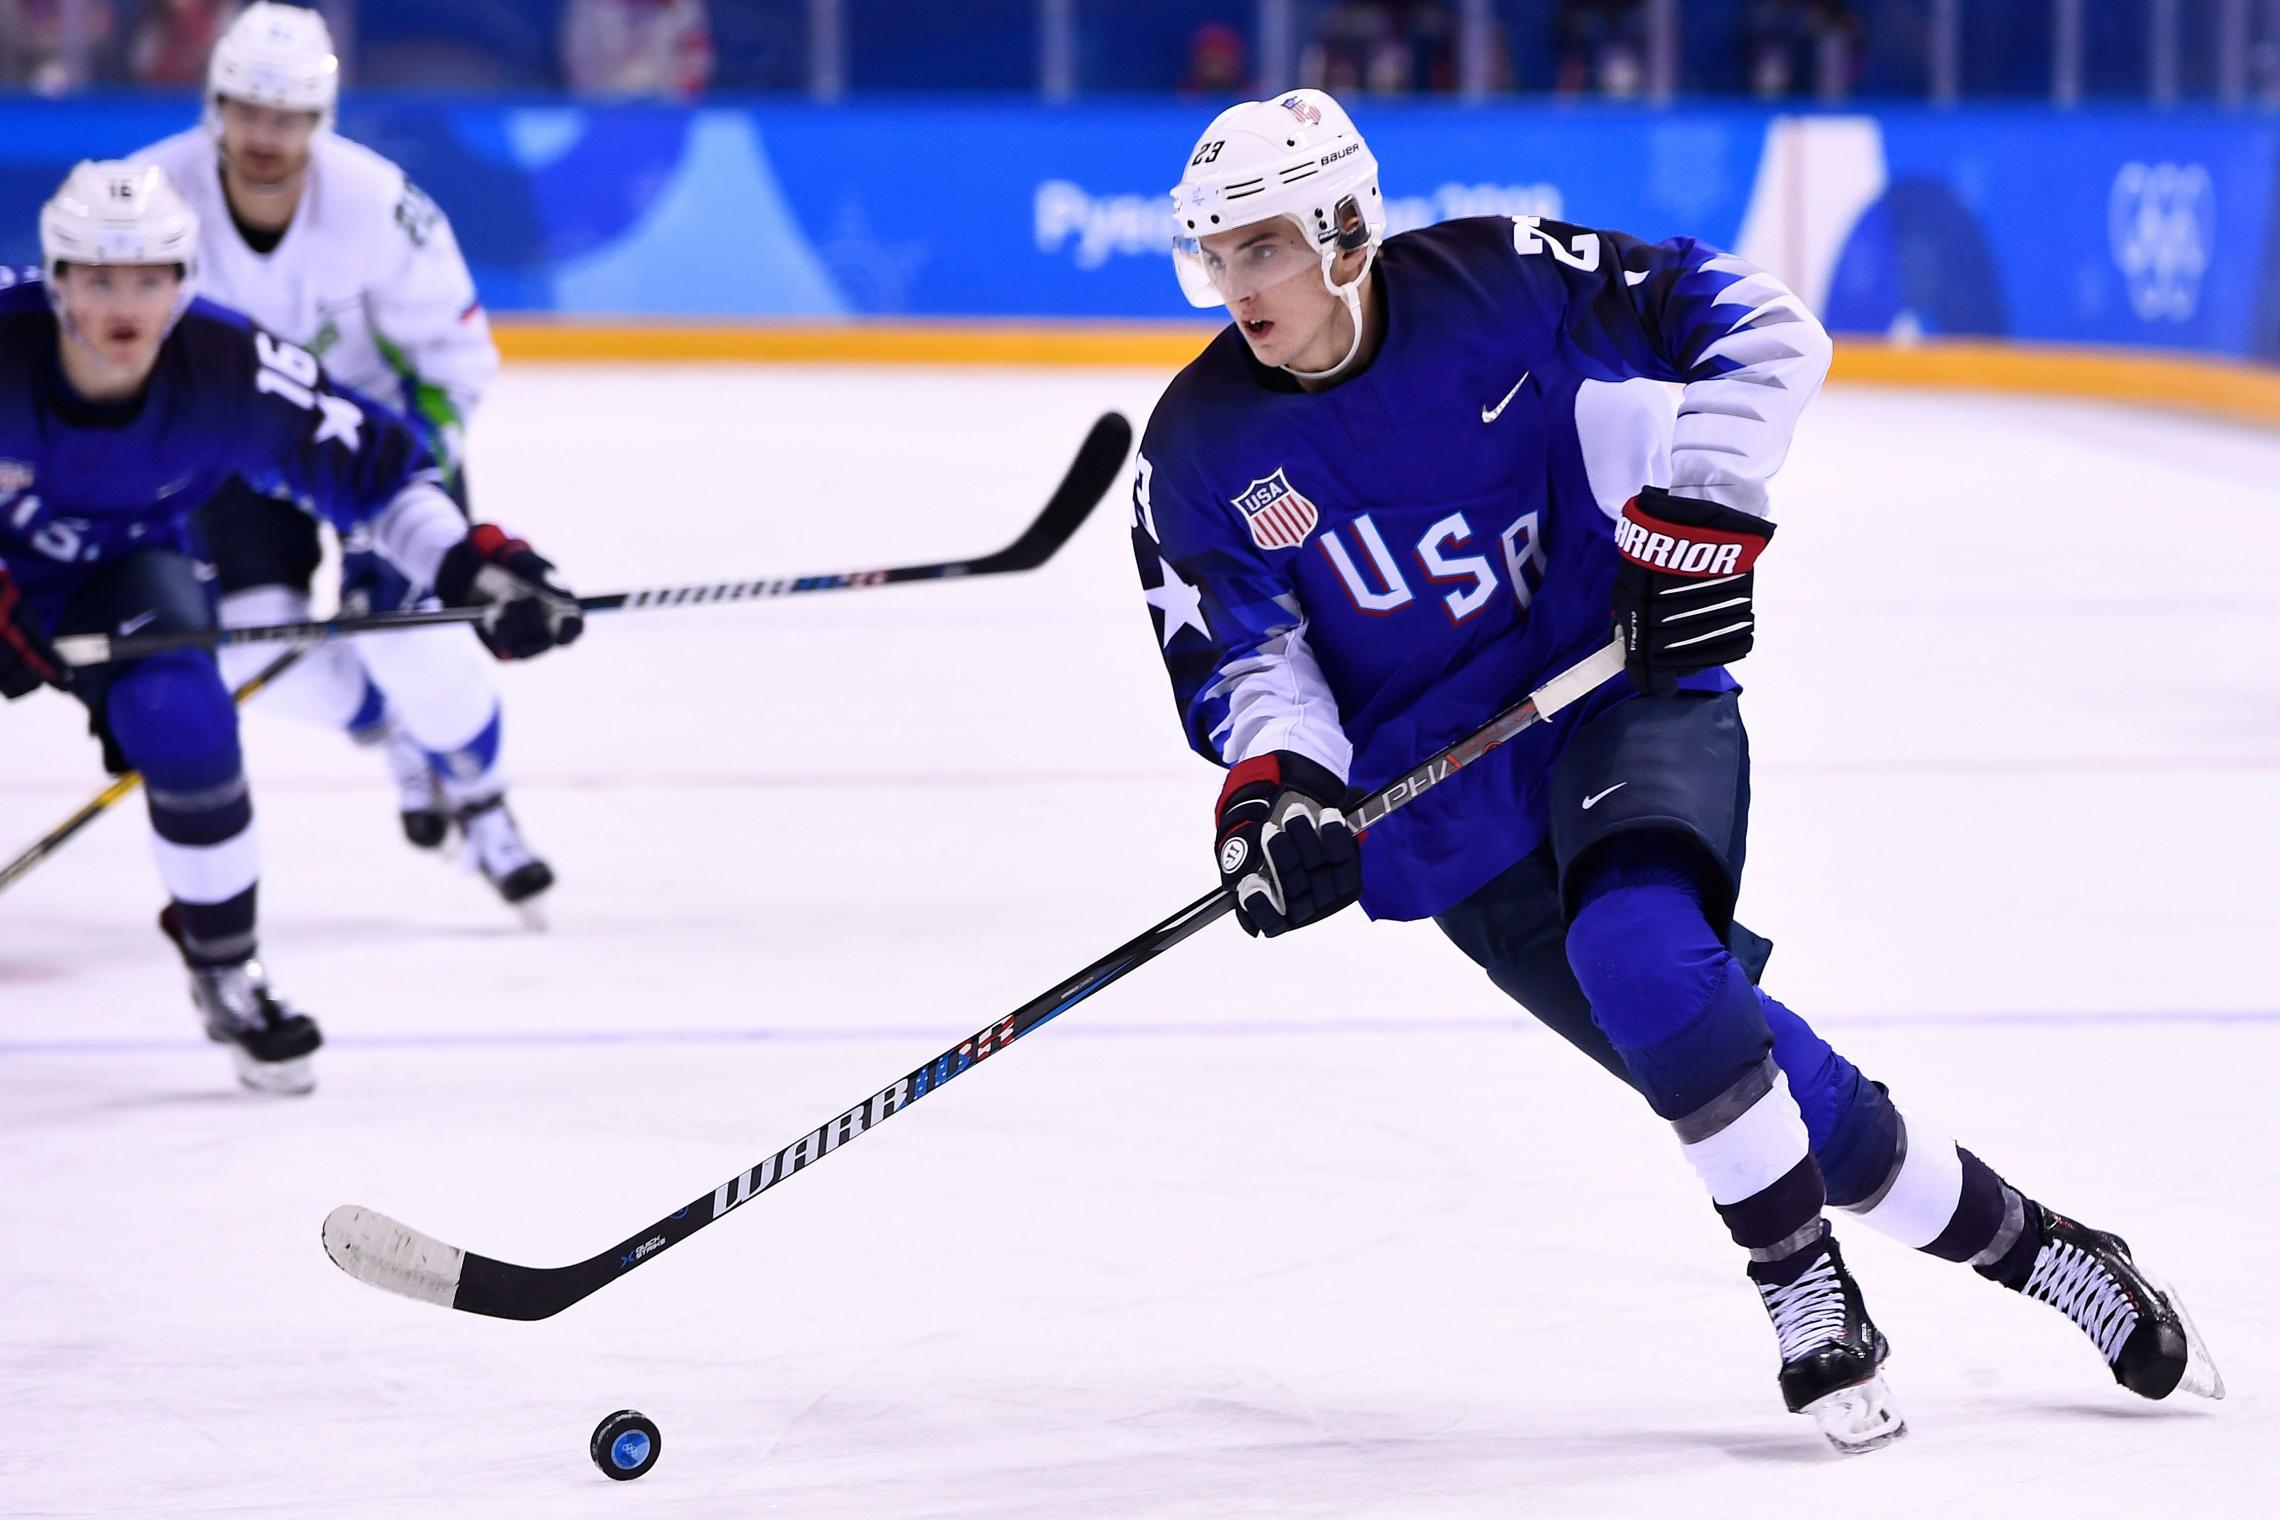 Let's be real, Team USA's men's Olympic hockey squad isn't good – The Denver Post